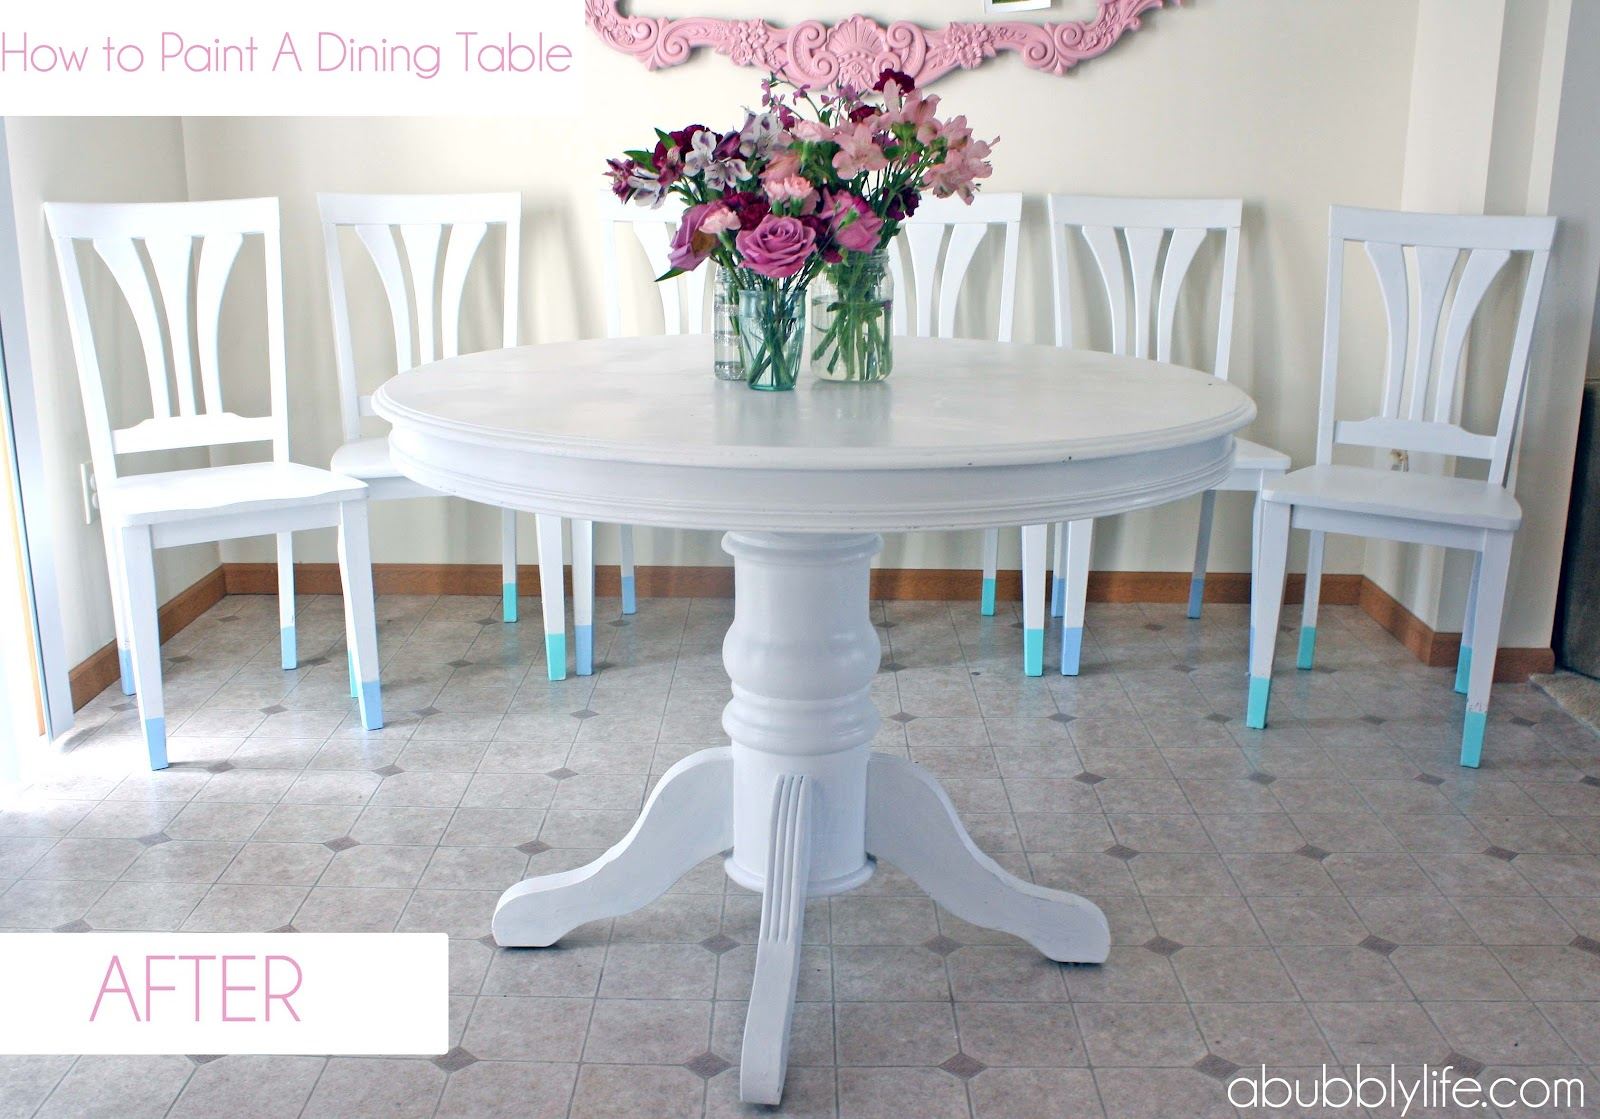 a bubbly life how to paint a dining room table amp chairs painting a dining room table recreated designs